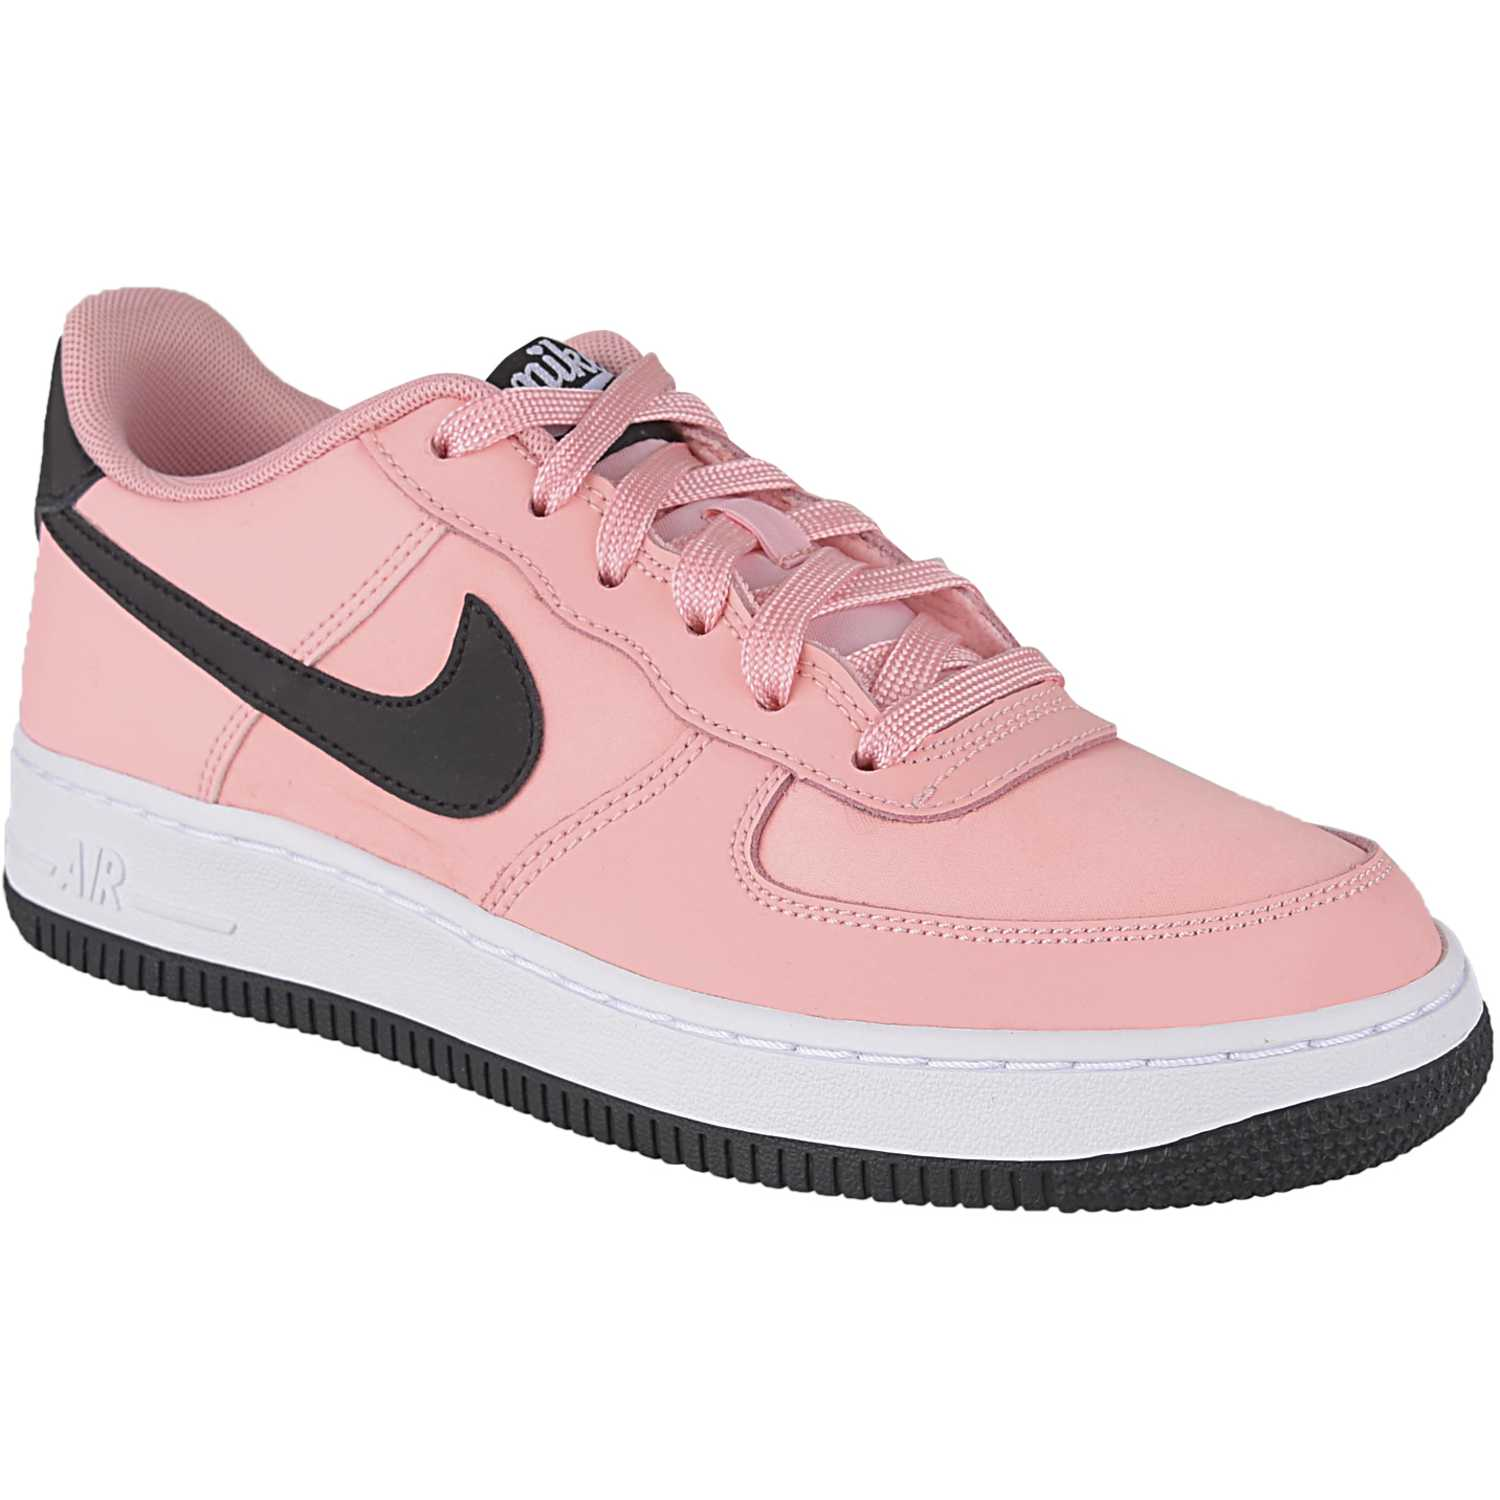 Nike air force 1 vday gg Rosado / negro Fitness y Cross-Training